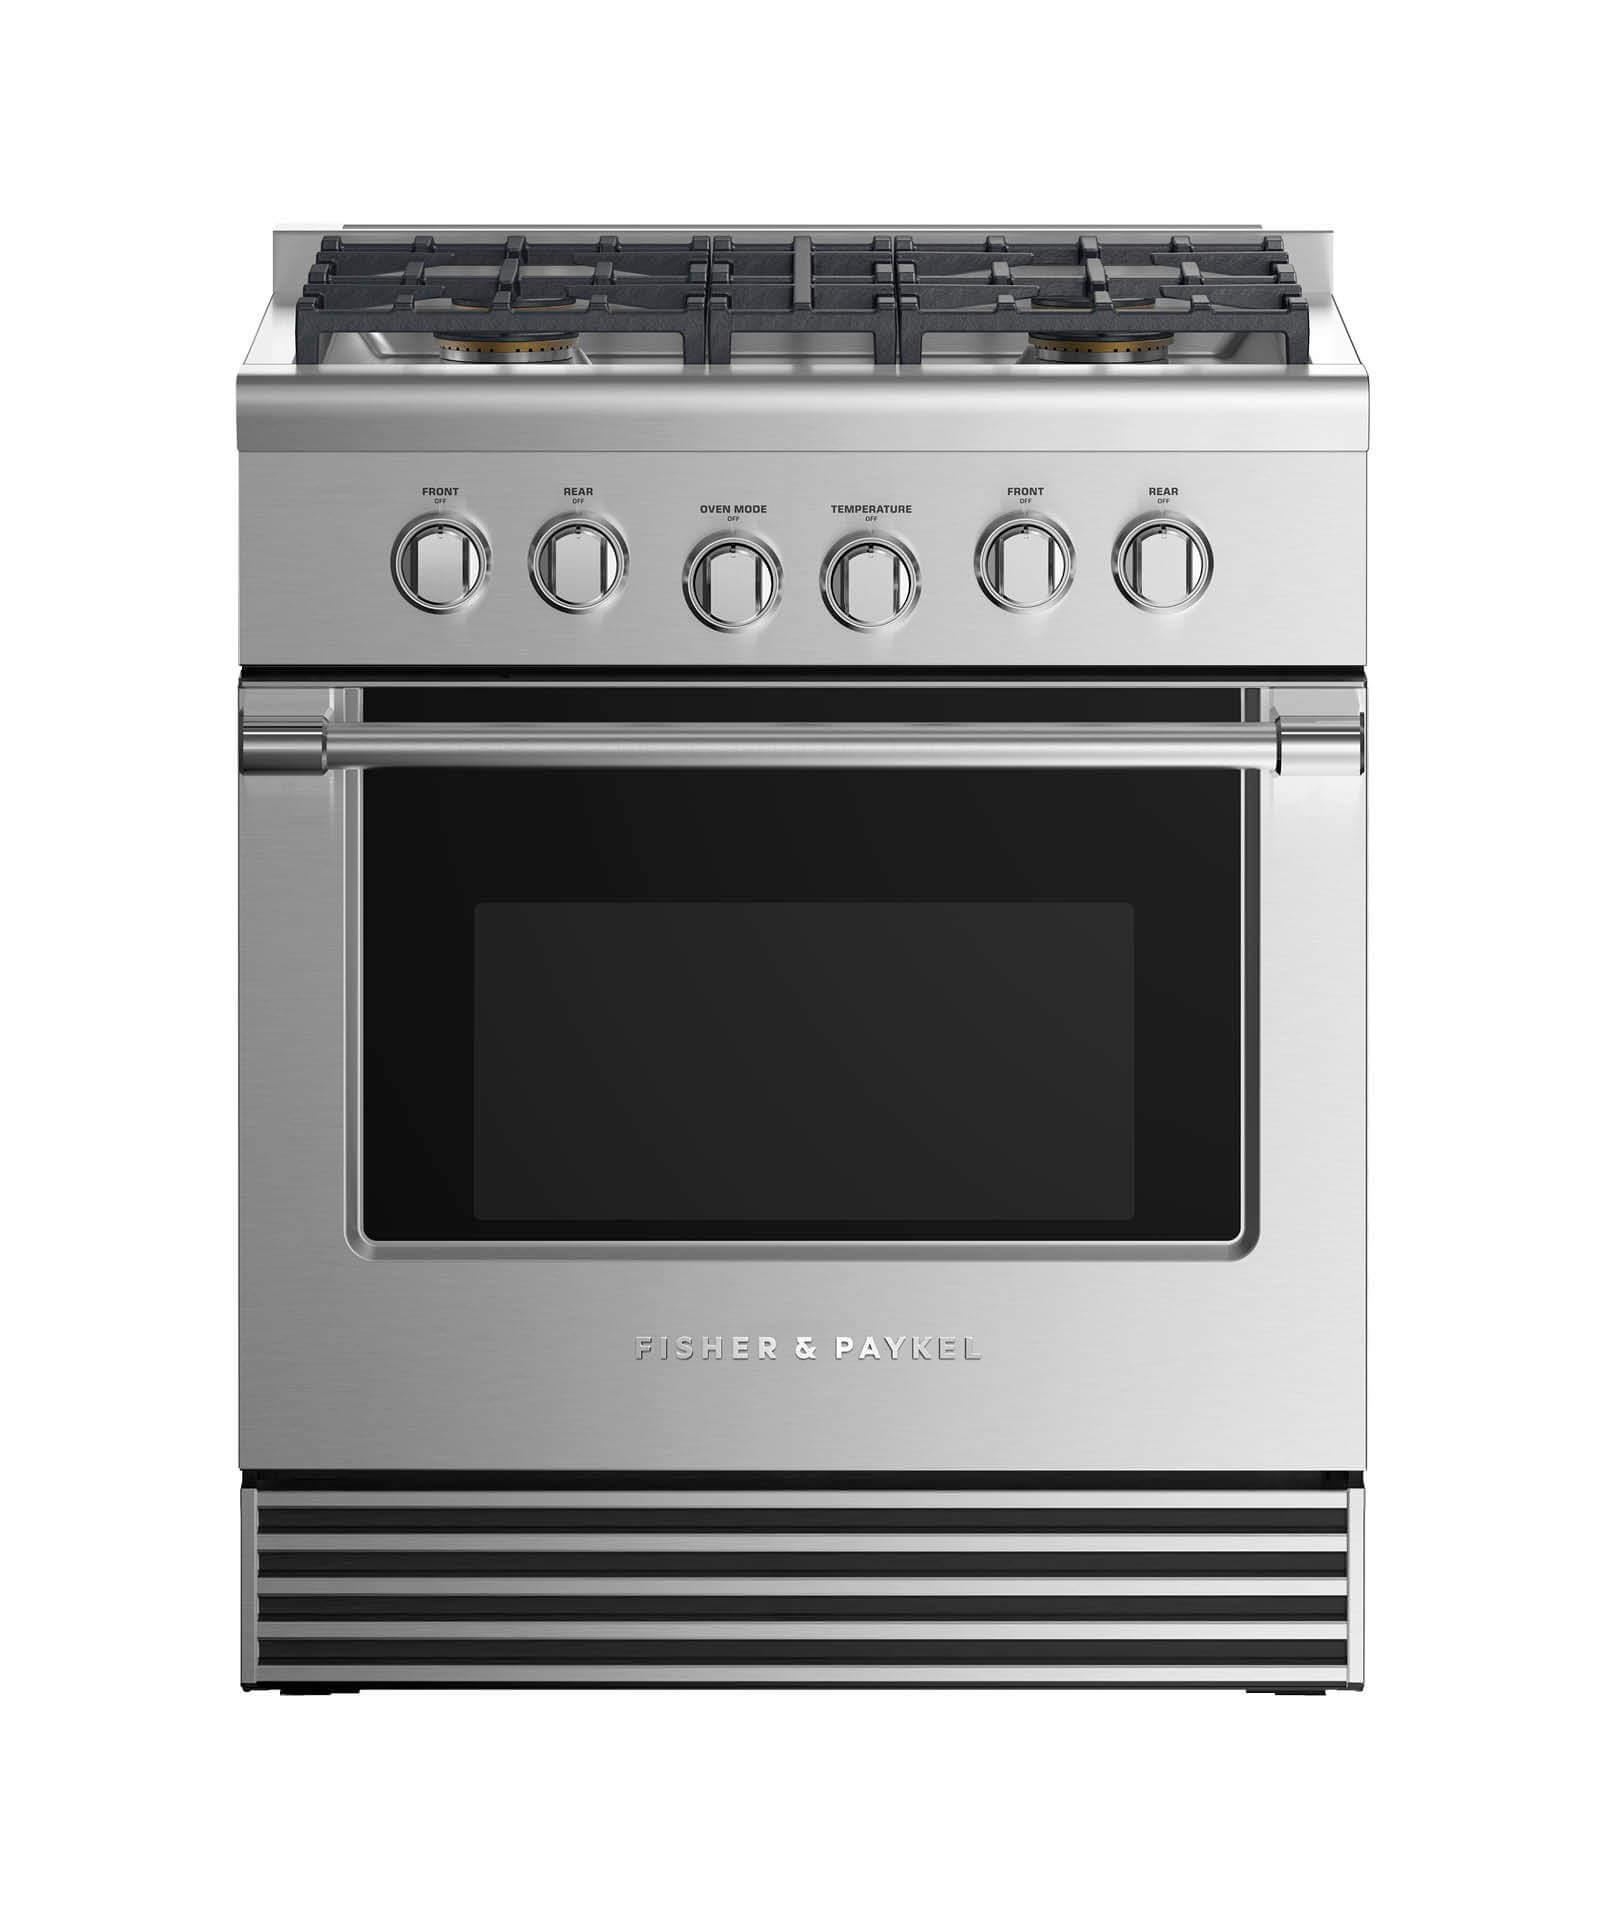 "Fisher and Paykel Gas Range 30"", 4 Burners"